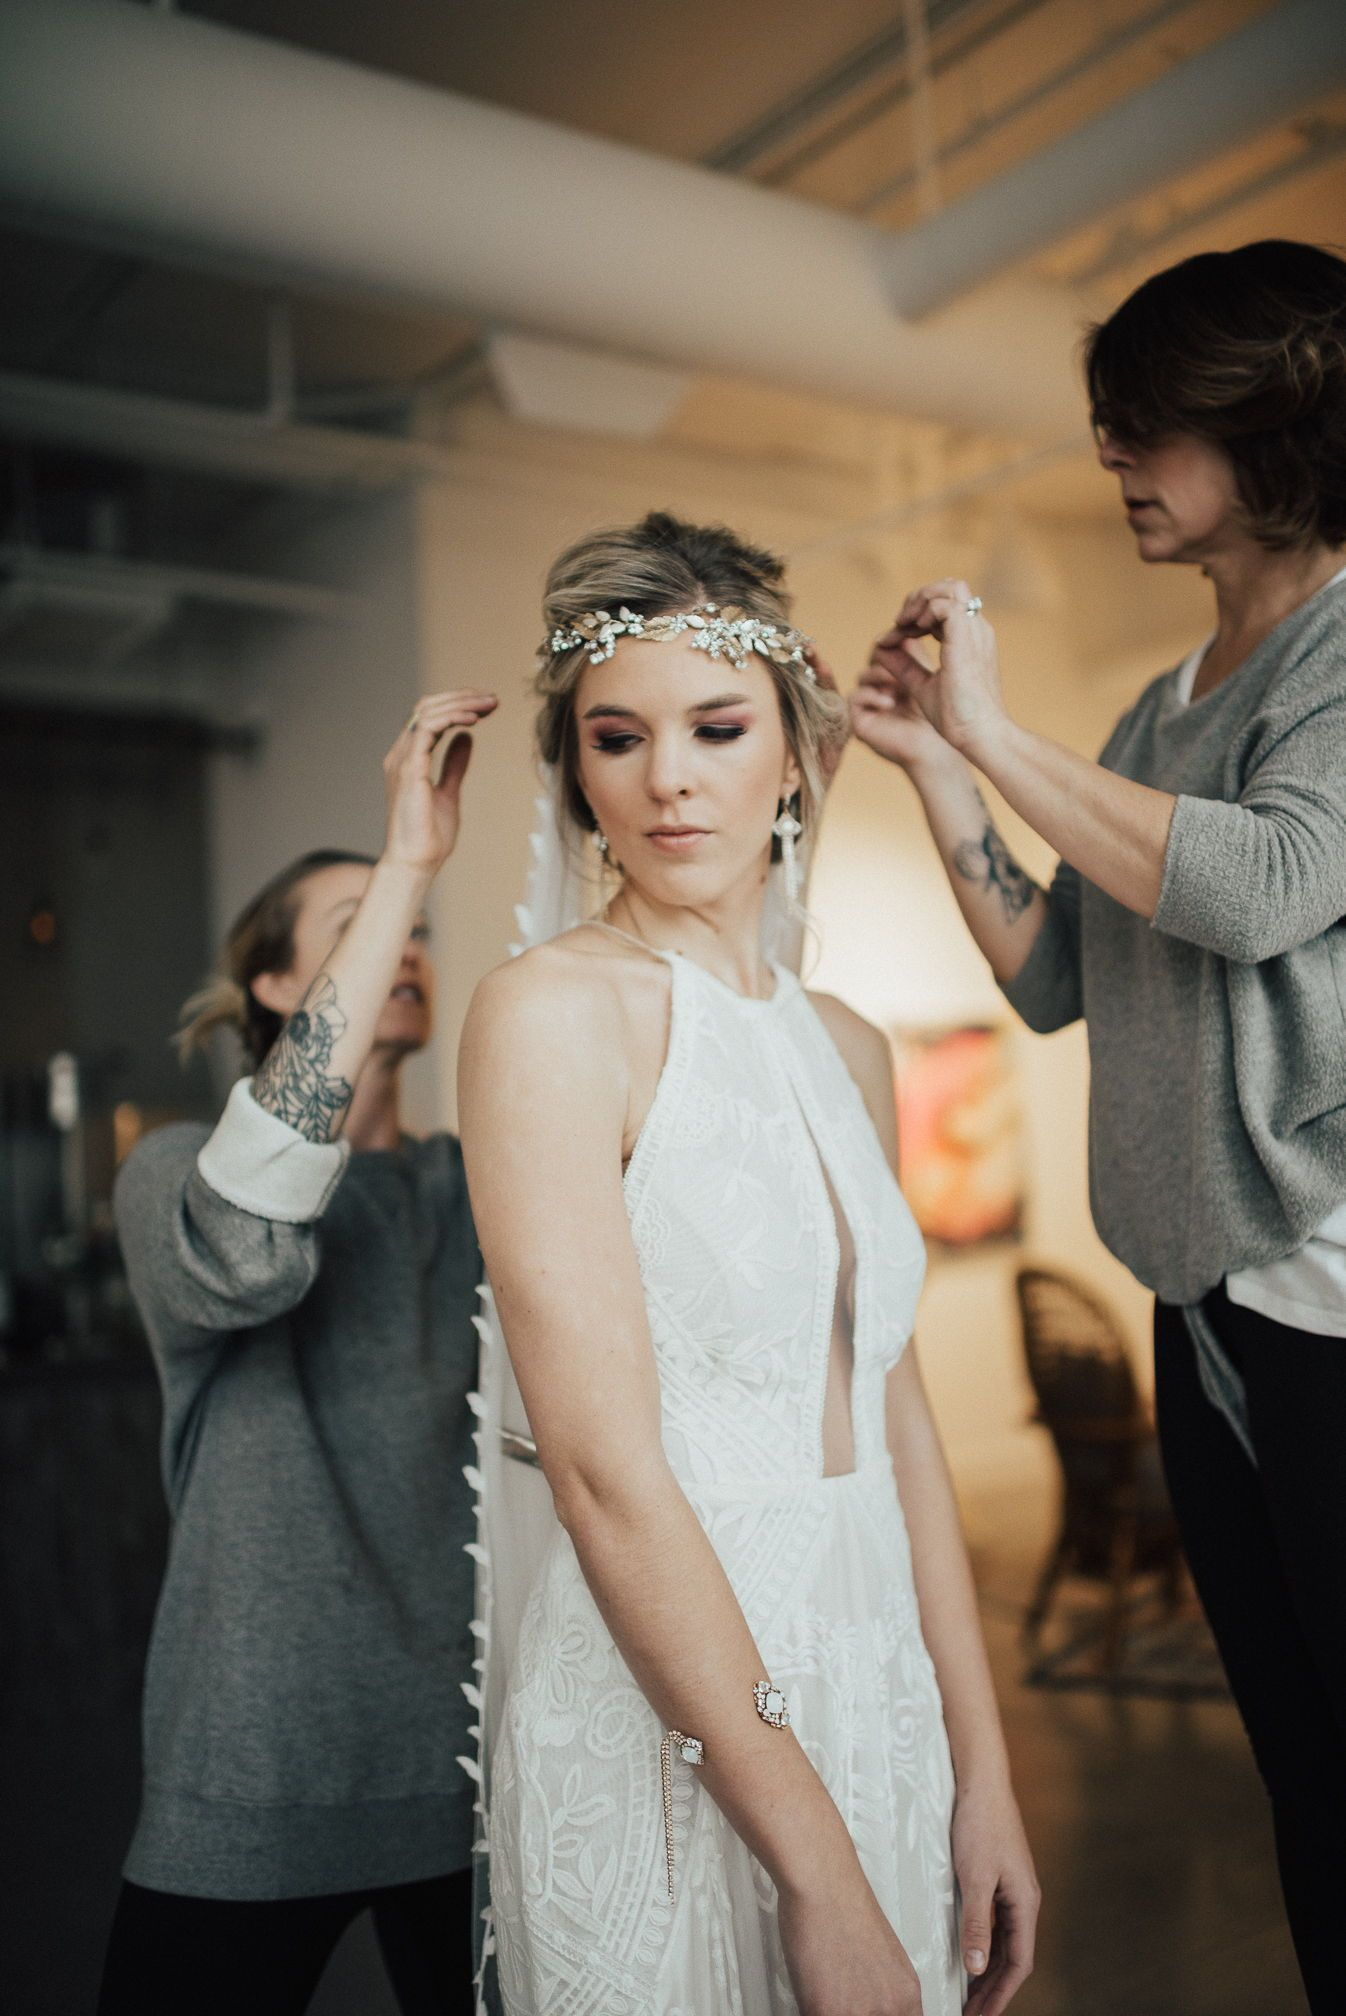 Boho Glam Bridal Inspo as seen from Couture Colorado styled